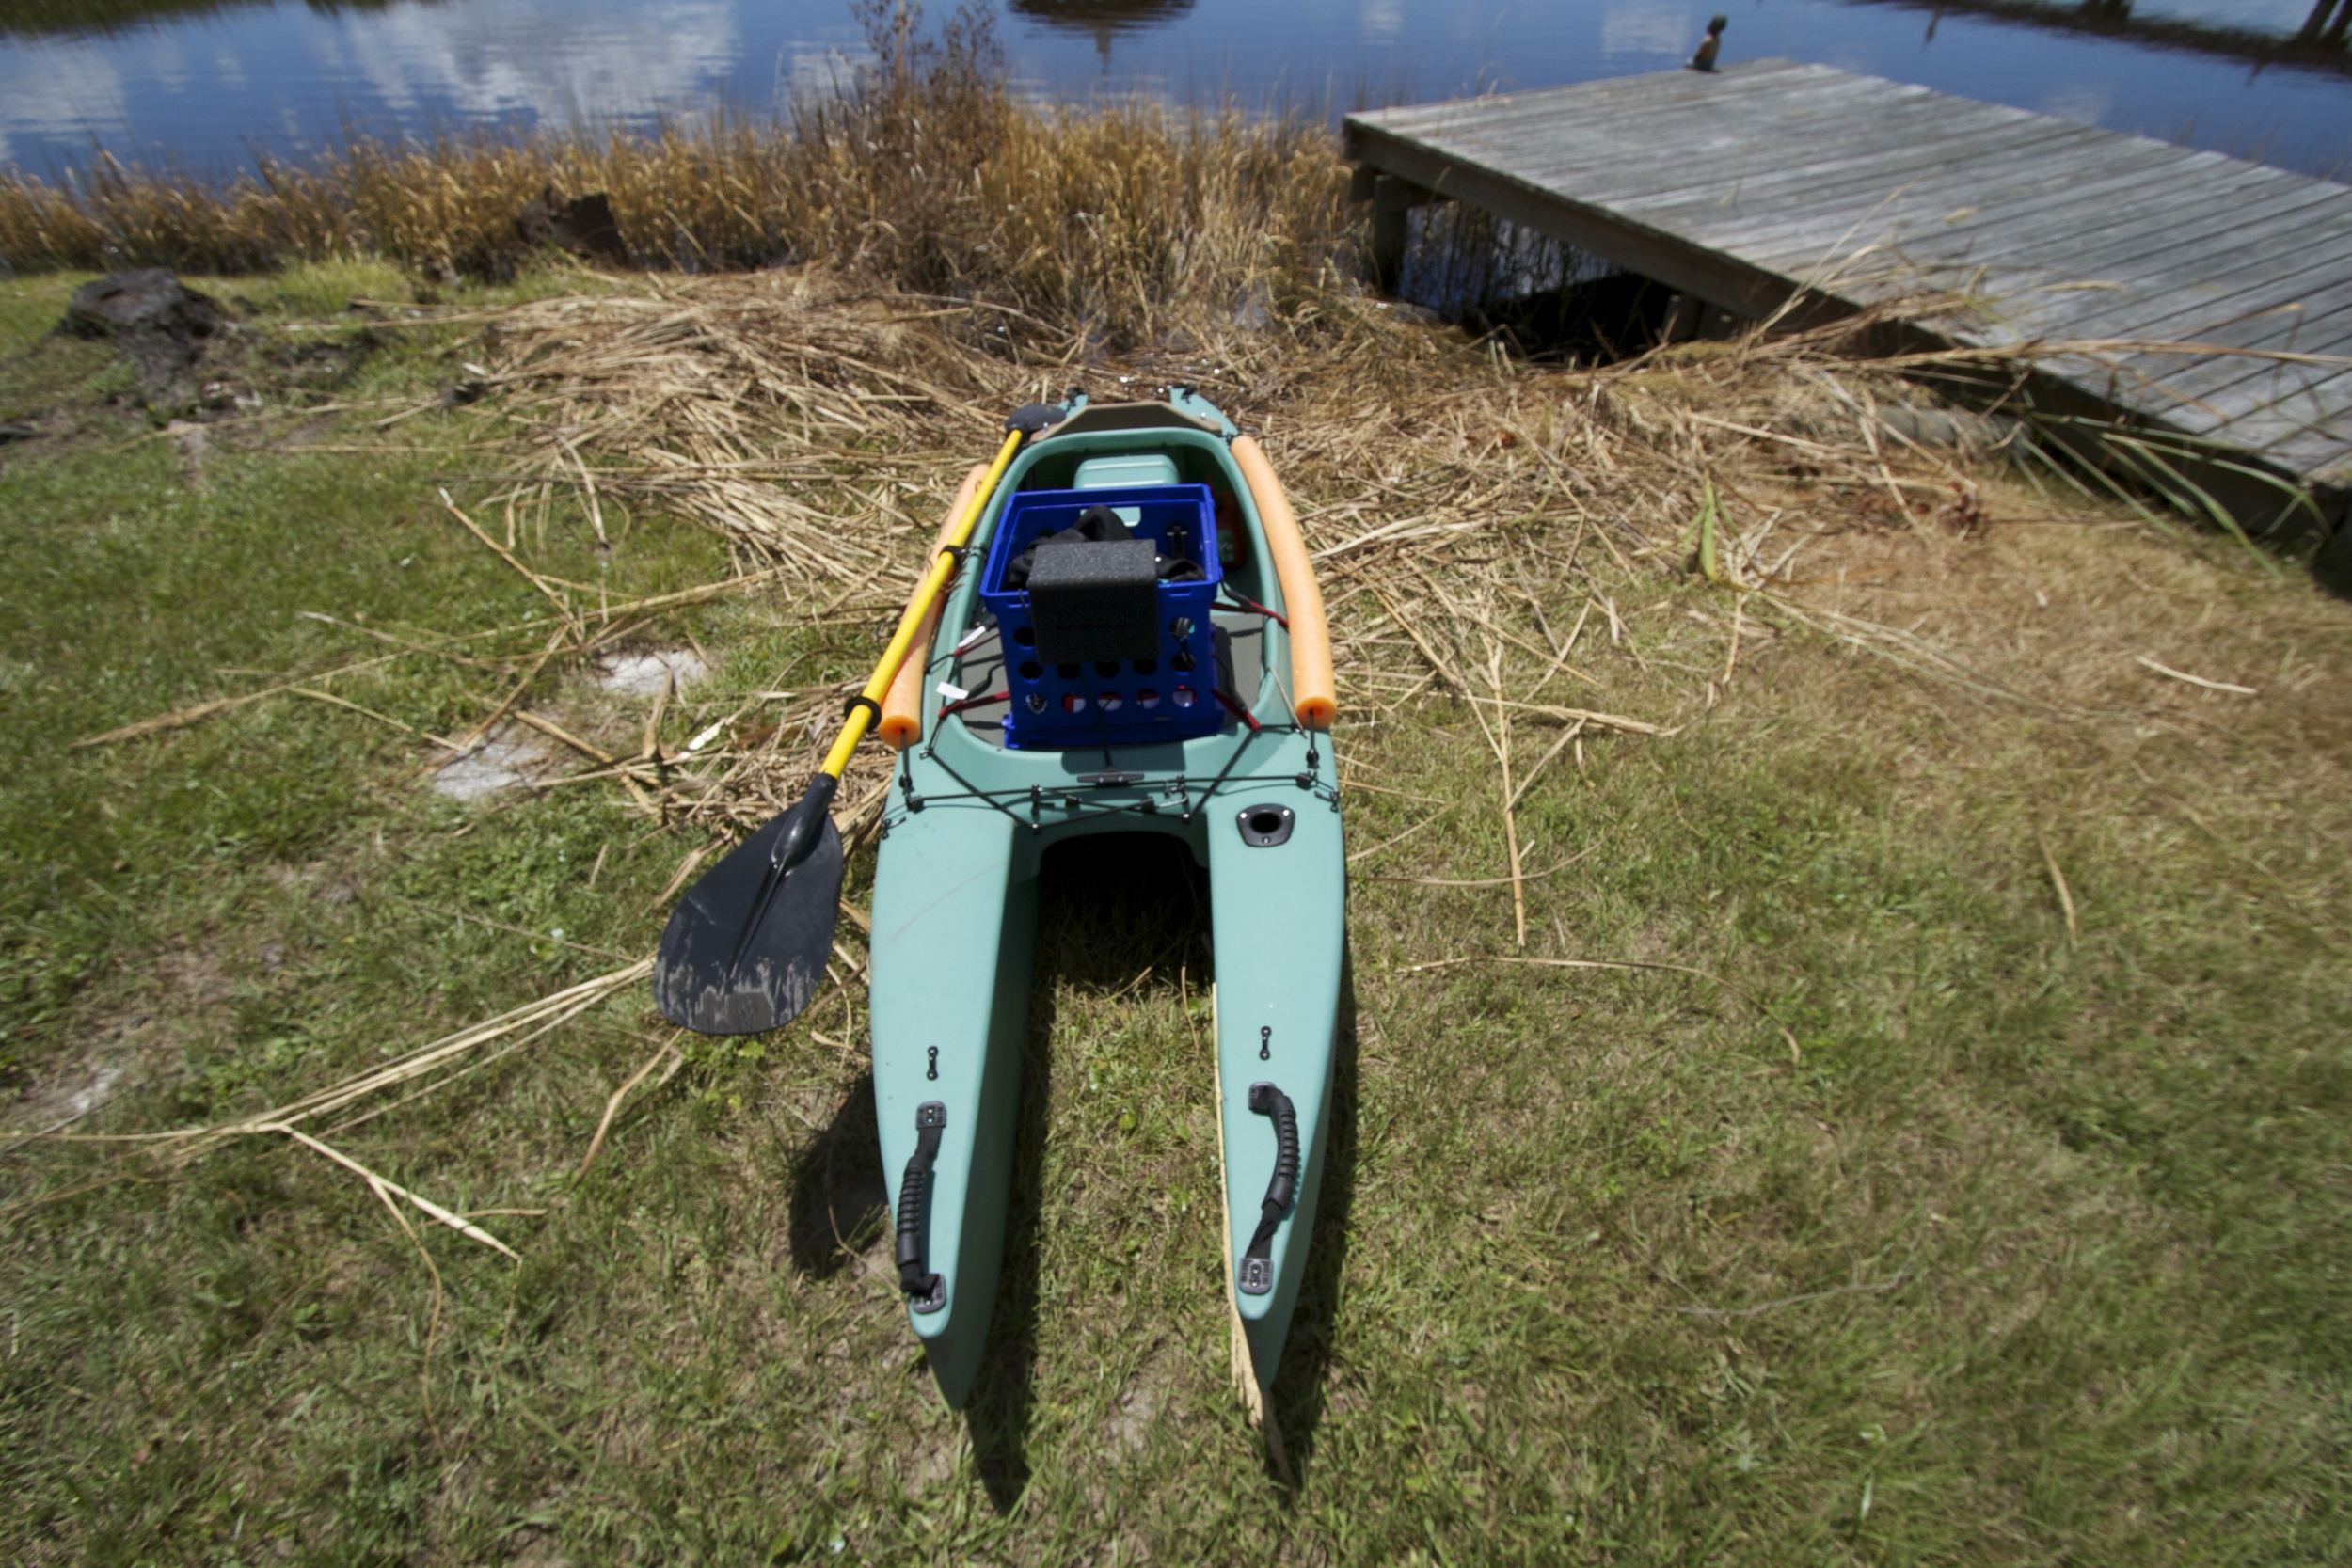 Front view of Kayak and launch site.